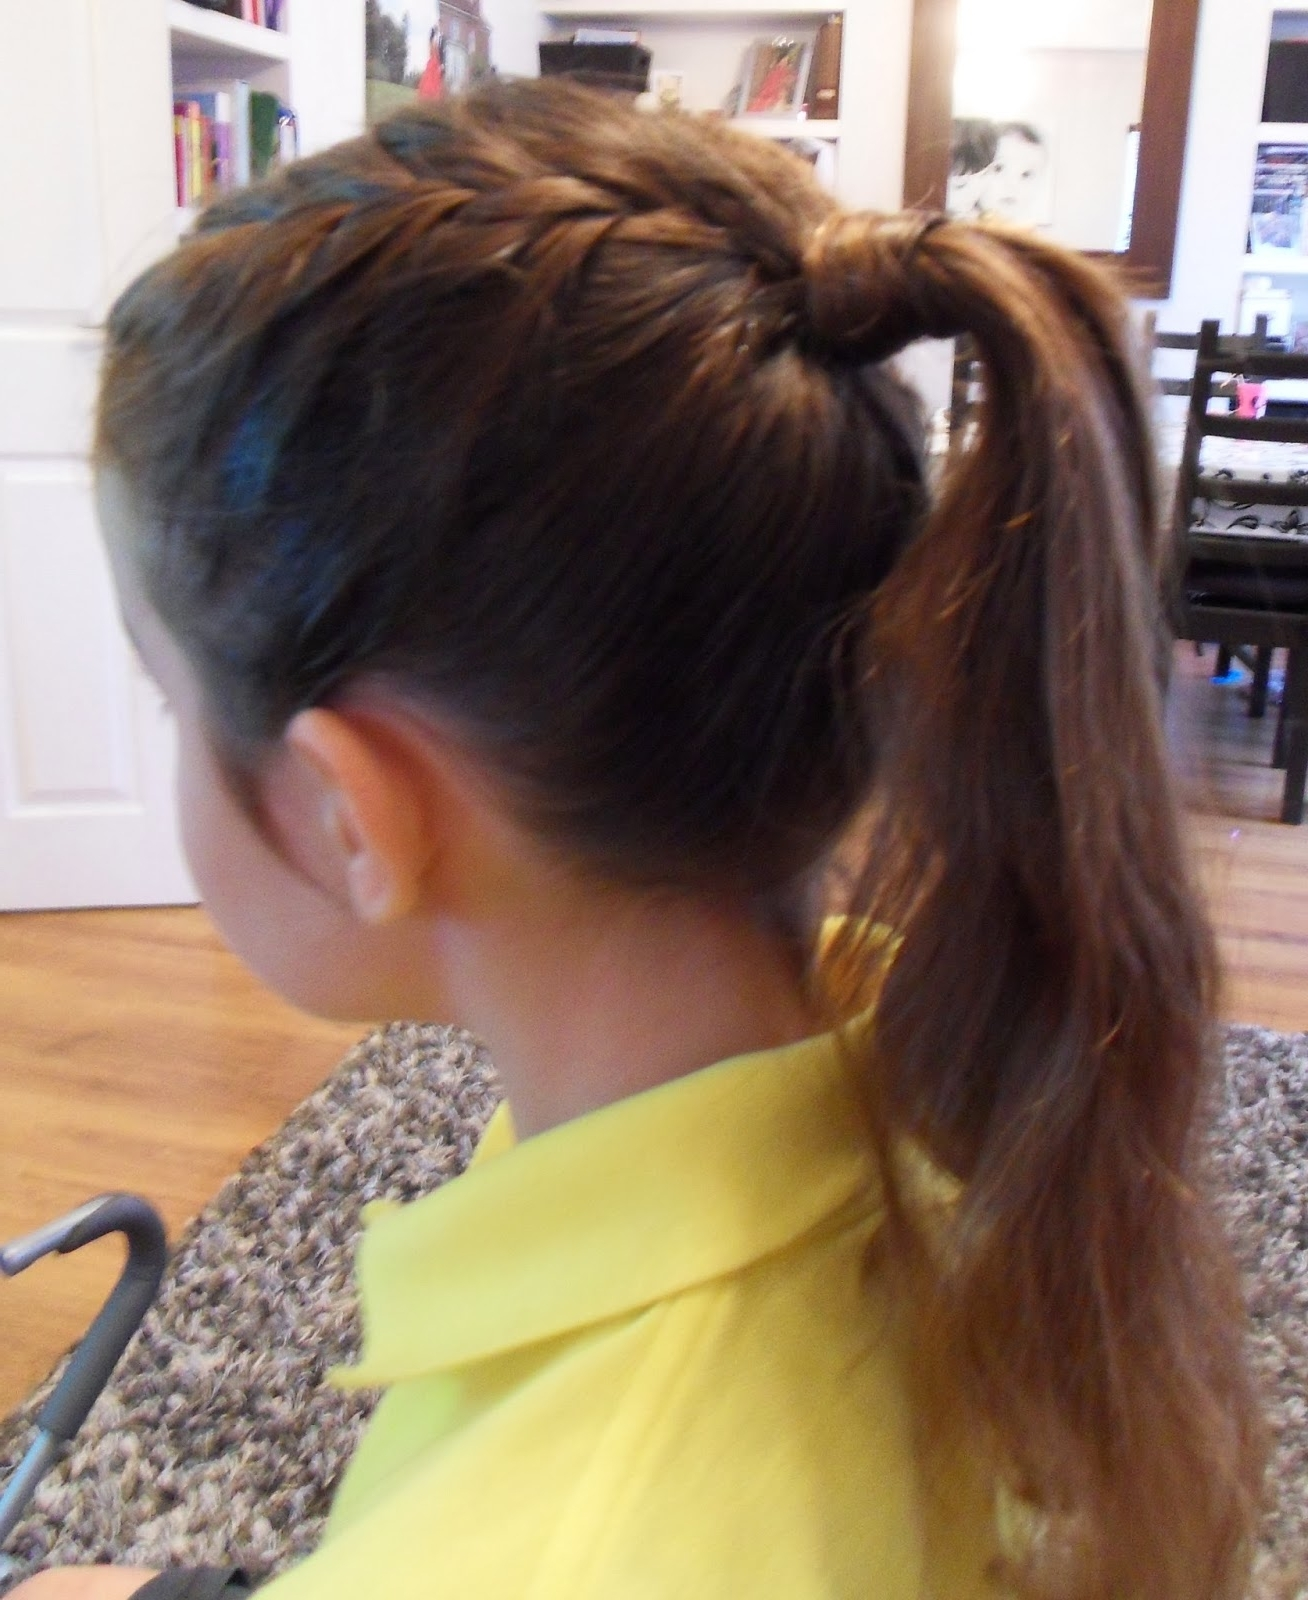 Yummy Mummy Survival: Girls Hairstyles – French Braid Into Pony Tail Inside Recent Braid Into Pony Hairstyles (View 7 of 20)